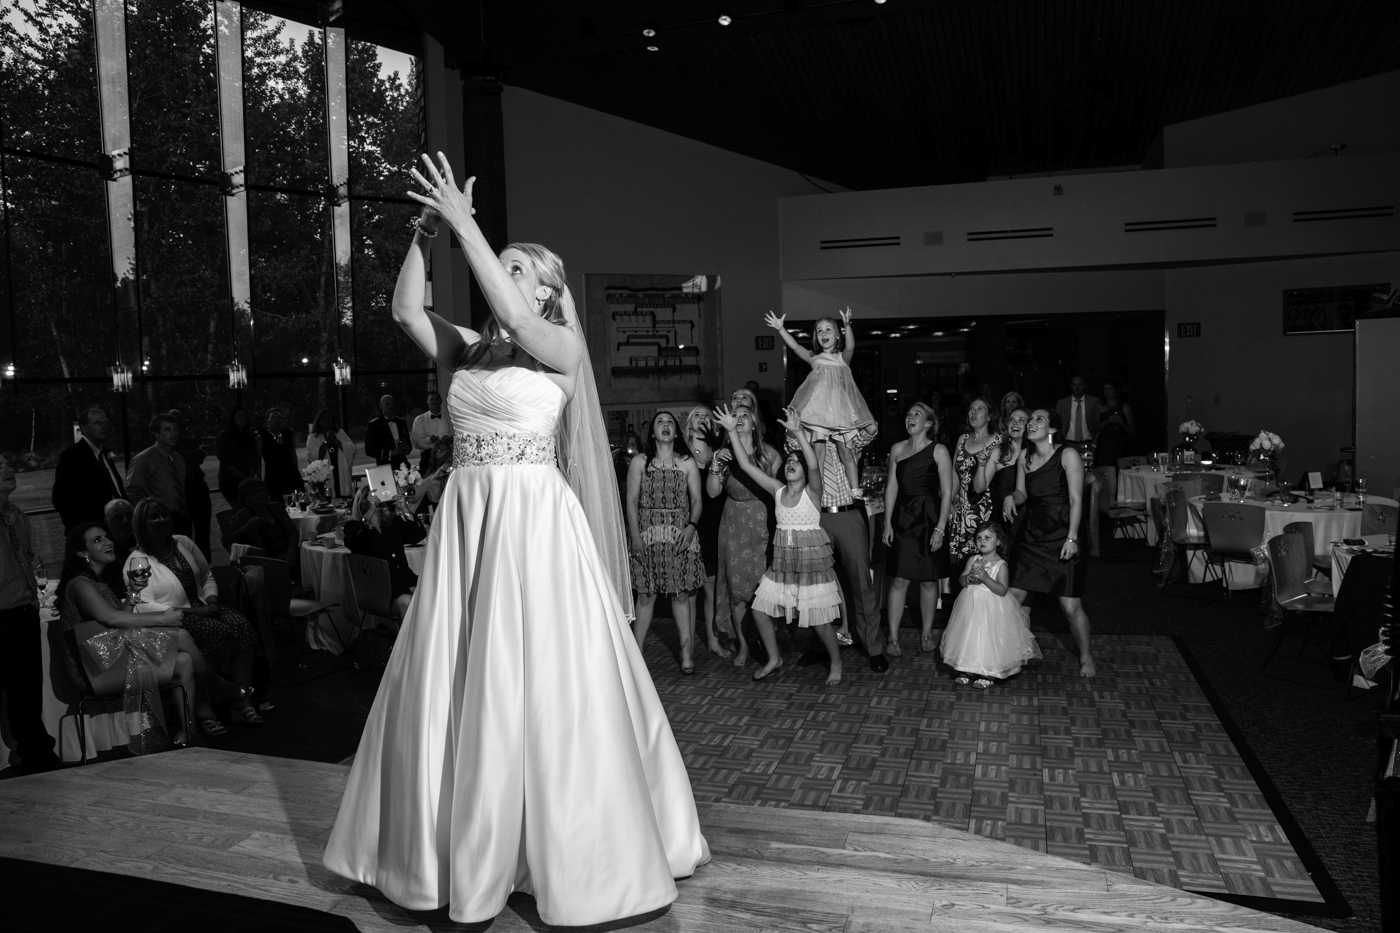 Wedding Bouquet Toss at Alaska Native Heritage Center - Photo credit Chugach Peaks Photography